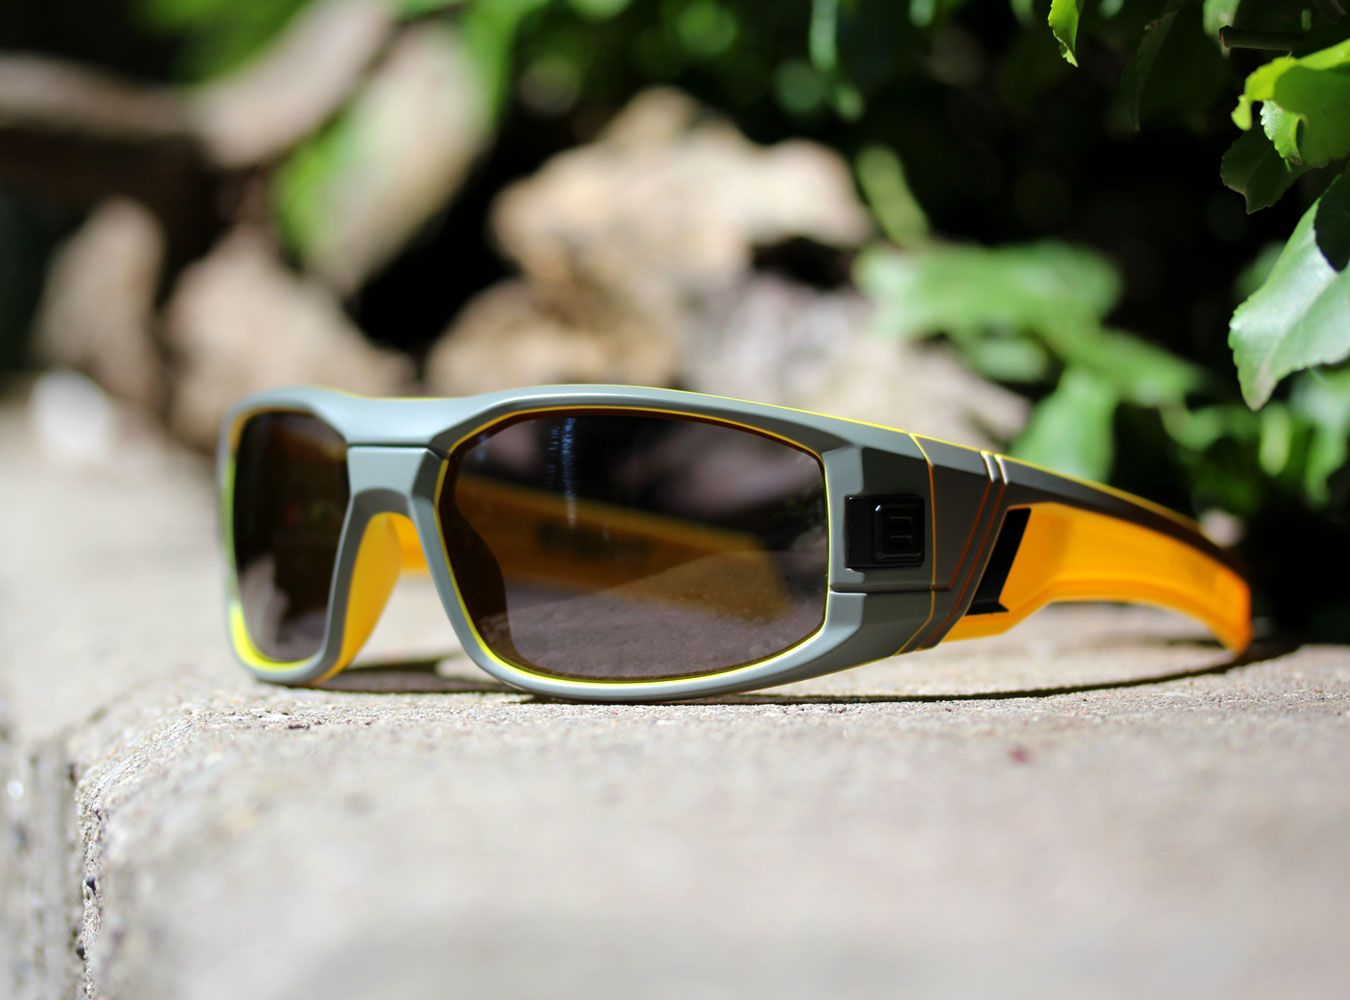 526dcb8962 Matte Gray Yellow V.1 sunglasses from EIGHT Eyewear WWW.IWEAR8.COM  8eyewear   sunglasses  shades  cool  mensfashion  fashion  style  summer  eight   sports   ...